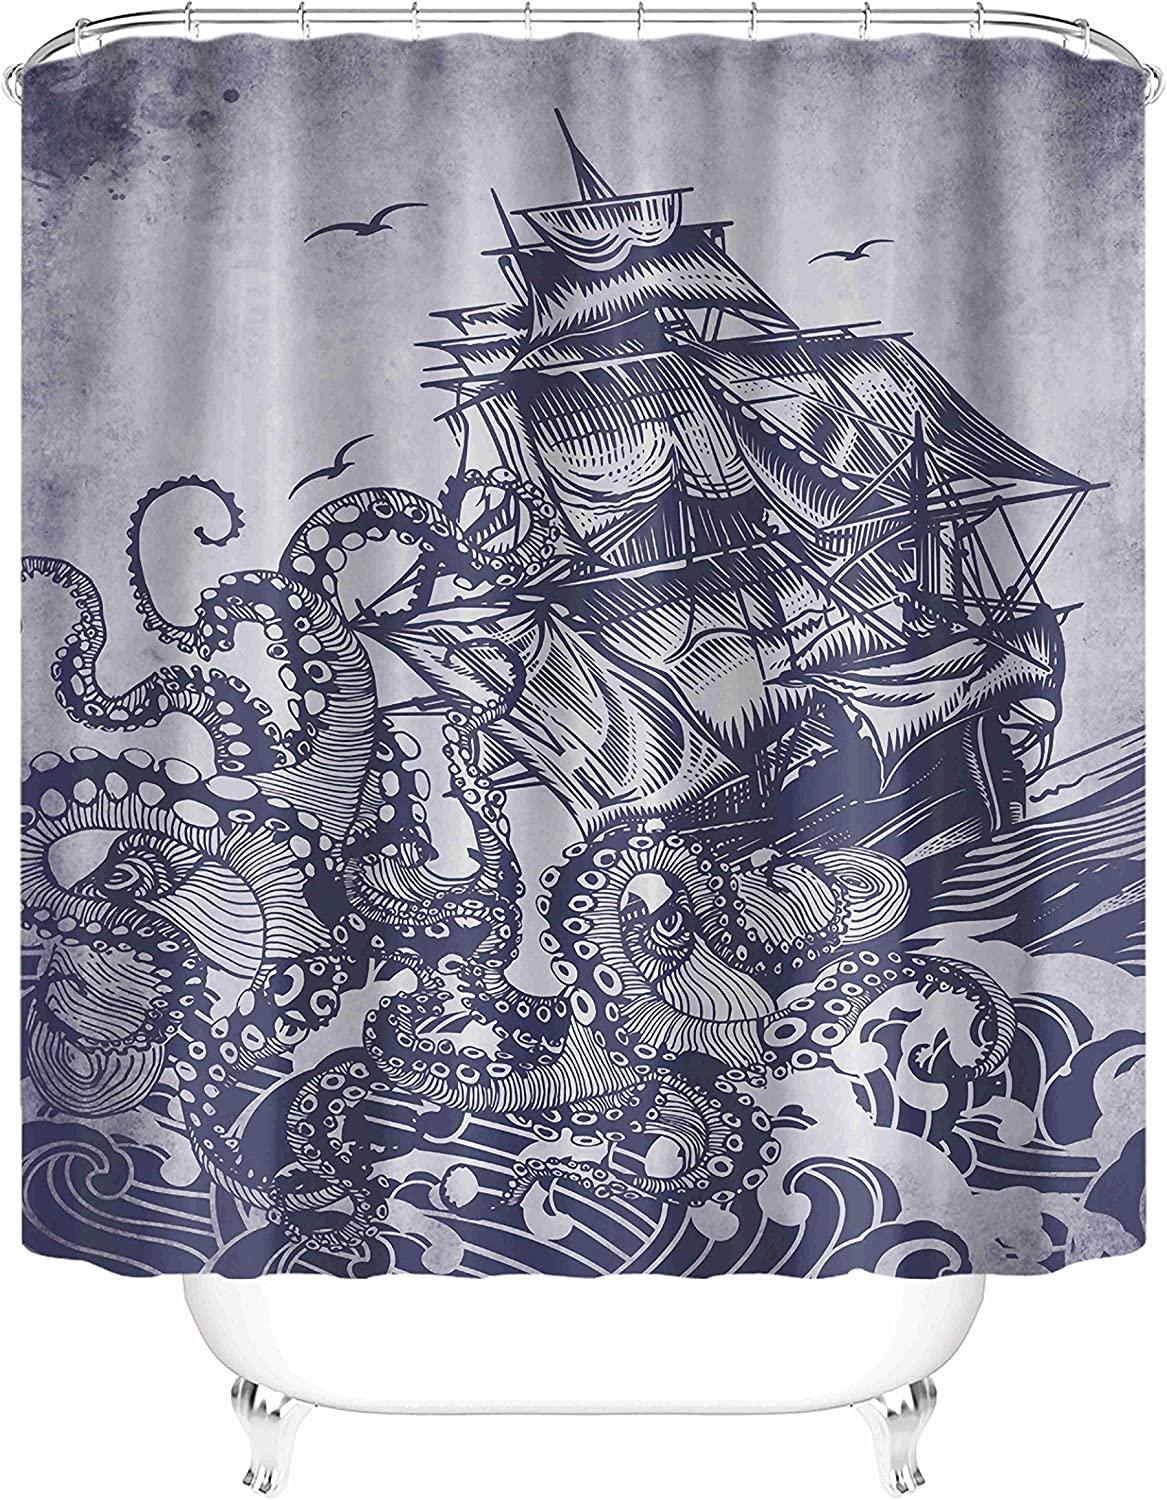 Taysta Fabric Waterproof Shower Curtain Curtains with Hooks Kraken Octopus Tentacles with Ship Sail Old Boat in Ocean Waves 72